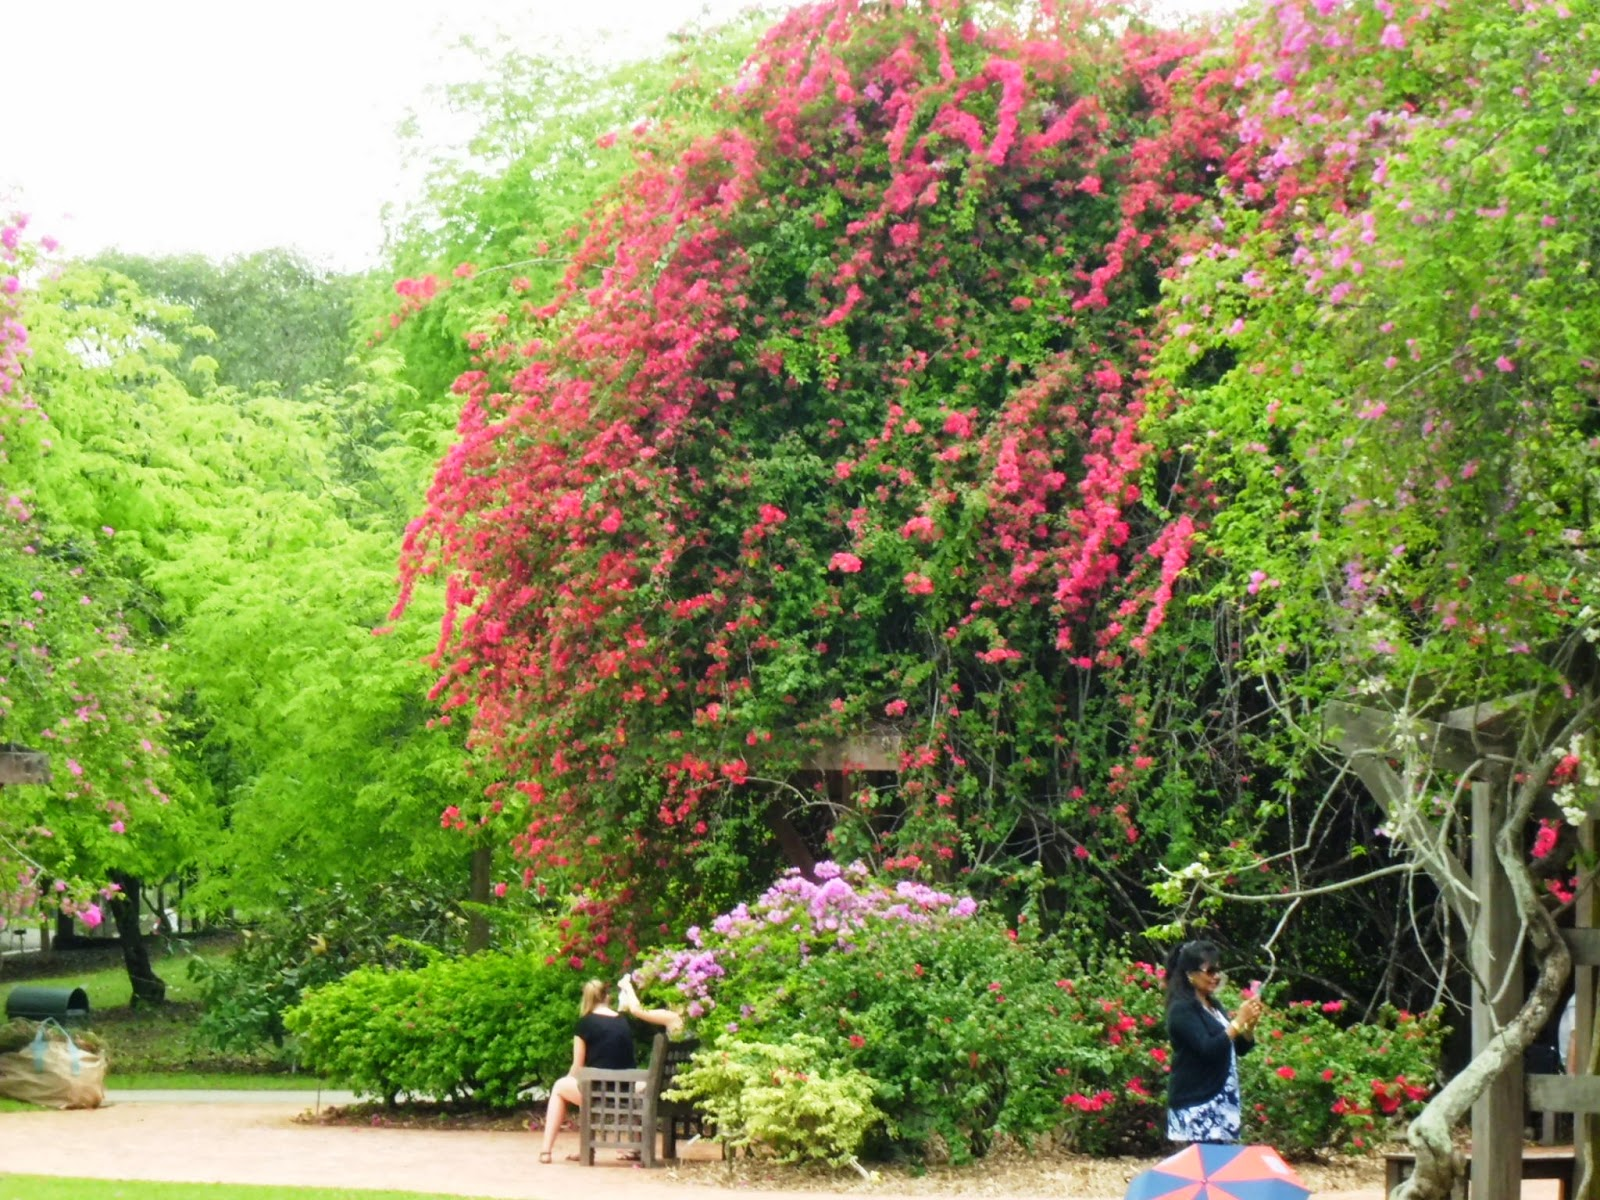 Flowering bougainvillea and other green plants.